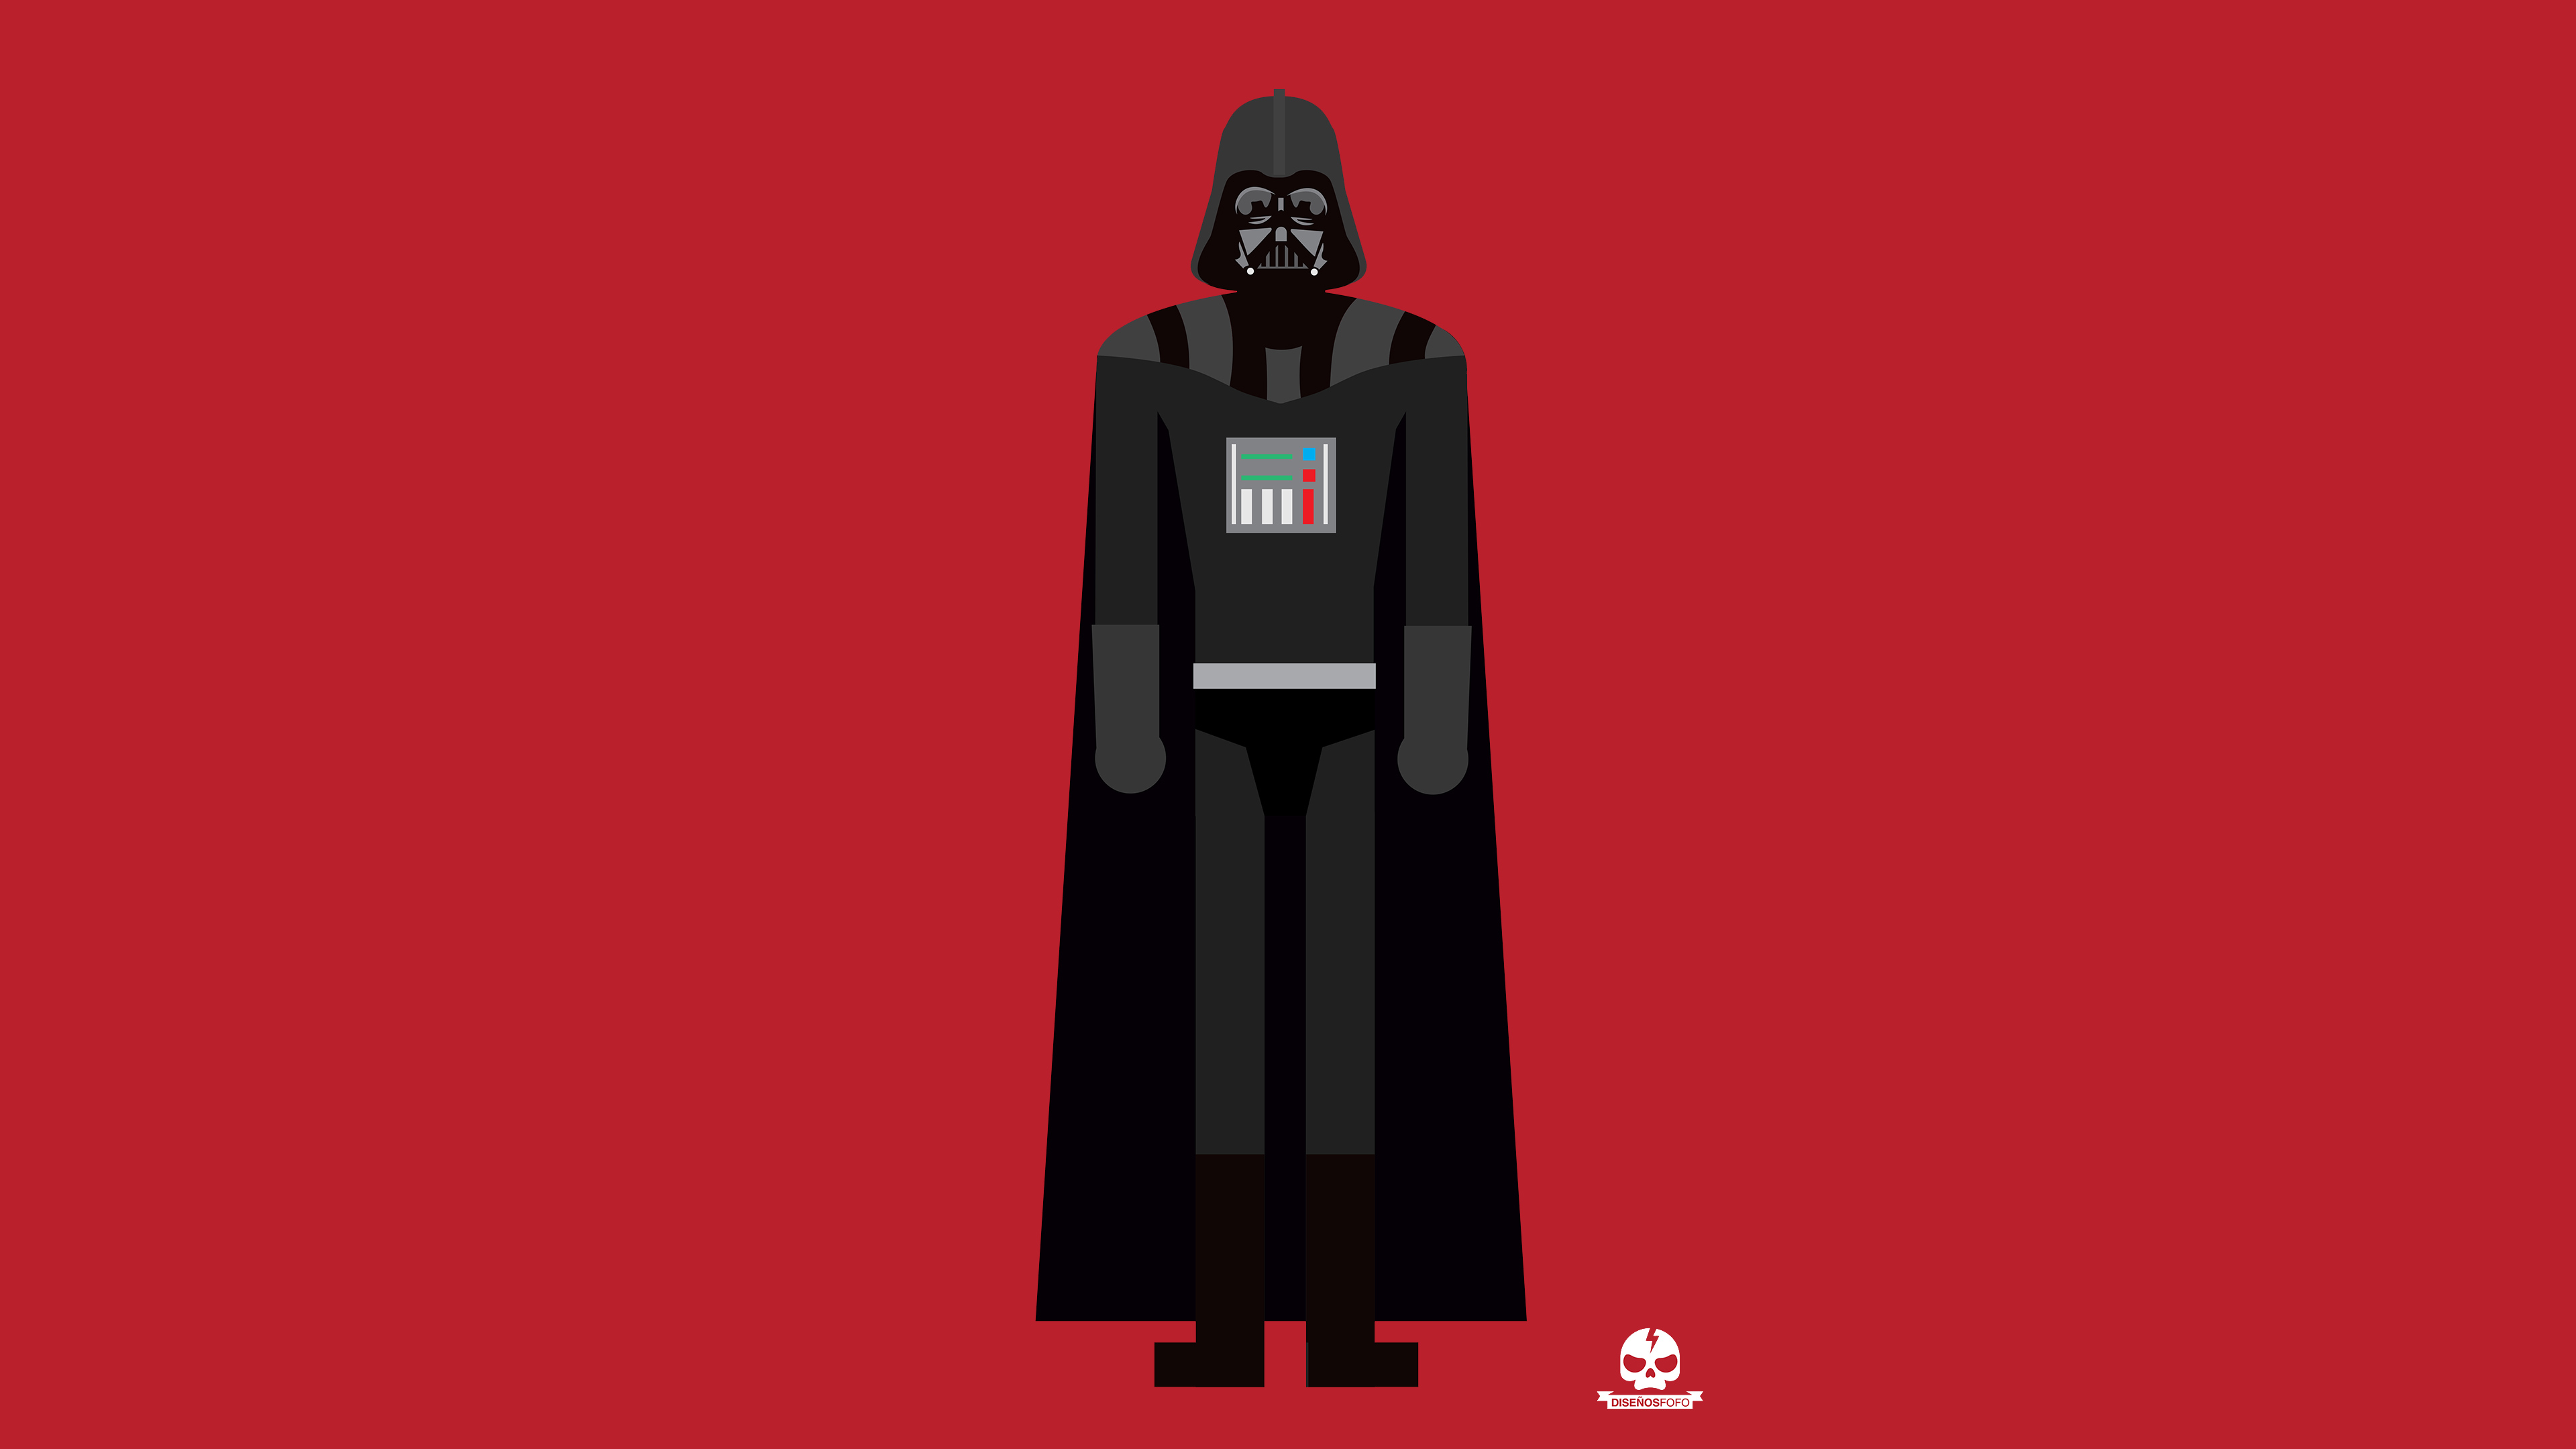 Wallpaper 4k Darth Vader Minimalism 4k 4k Wallpapers